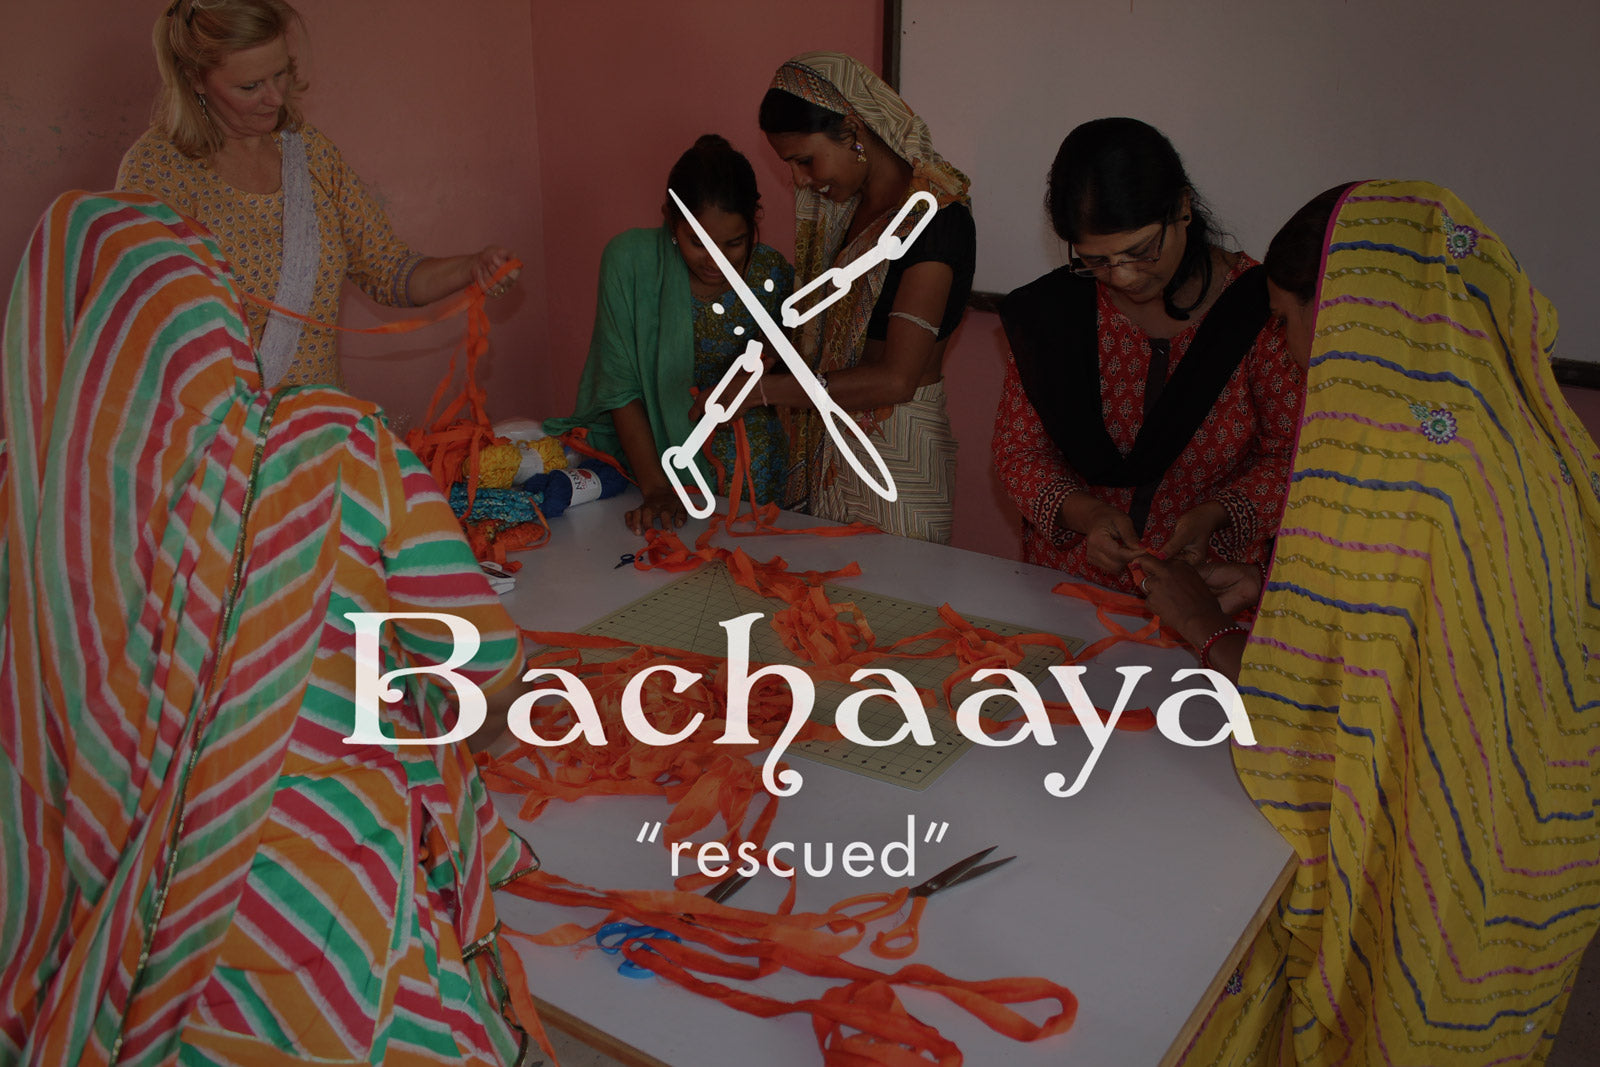 FreedomWorks is now Bachaaya!